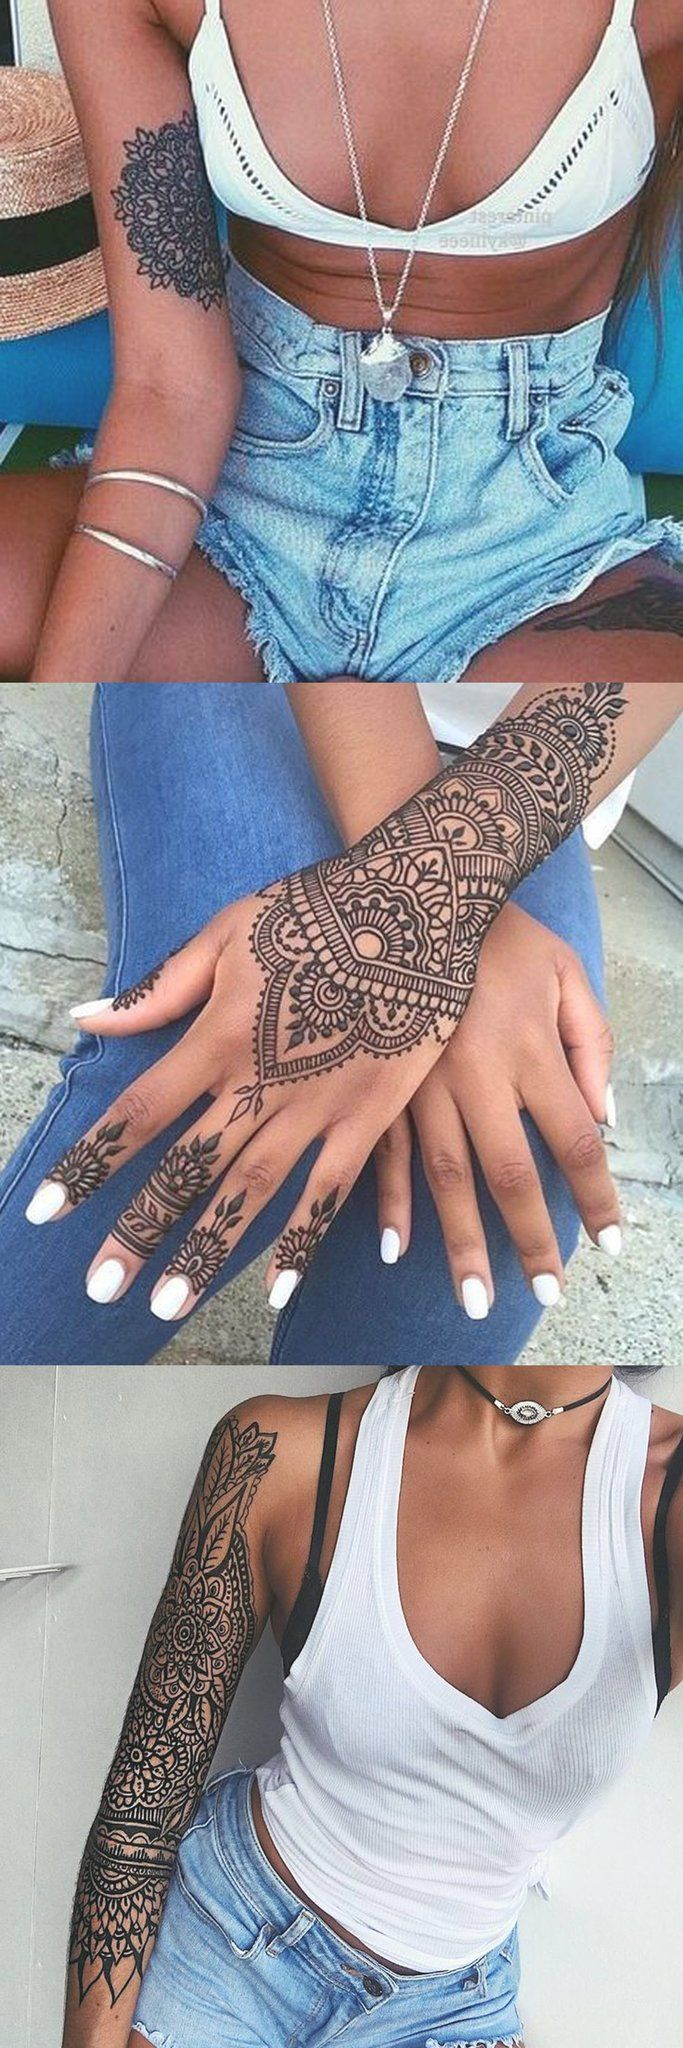 Beautiful Mandala Placement Tattoo Ideas - Black Henna Hand Lotus Tatt - Inner Arm Sleeve Bicep Tat - Full Geometric Womens Tatouage - MyBodiArt.com Denim